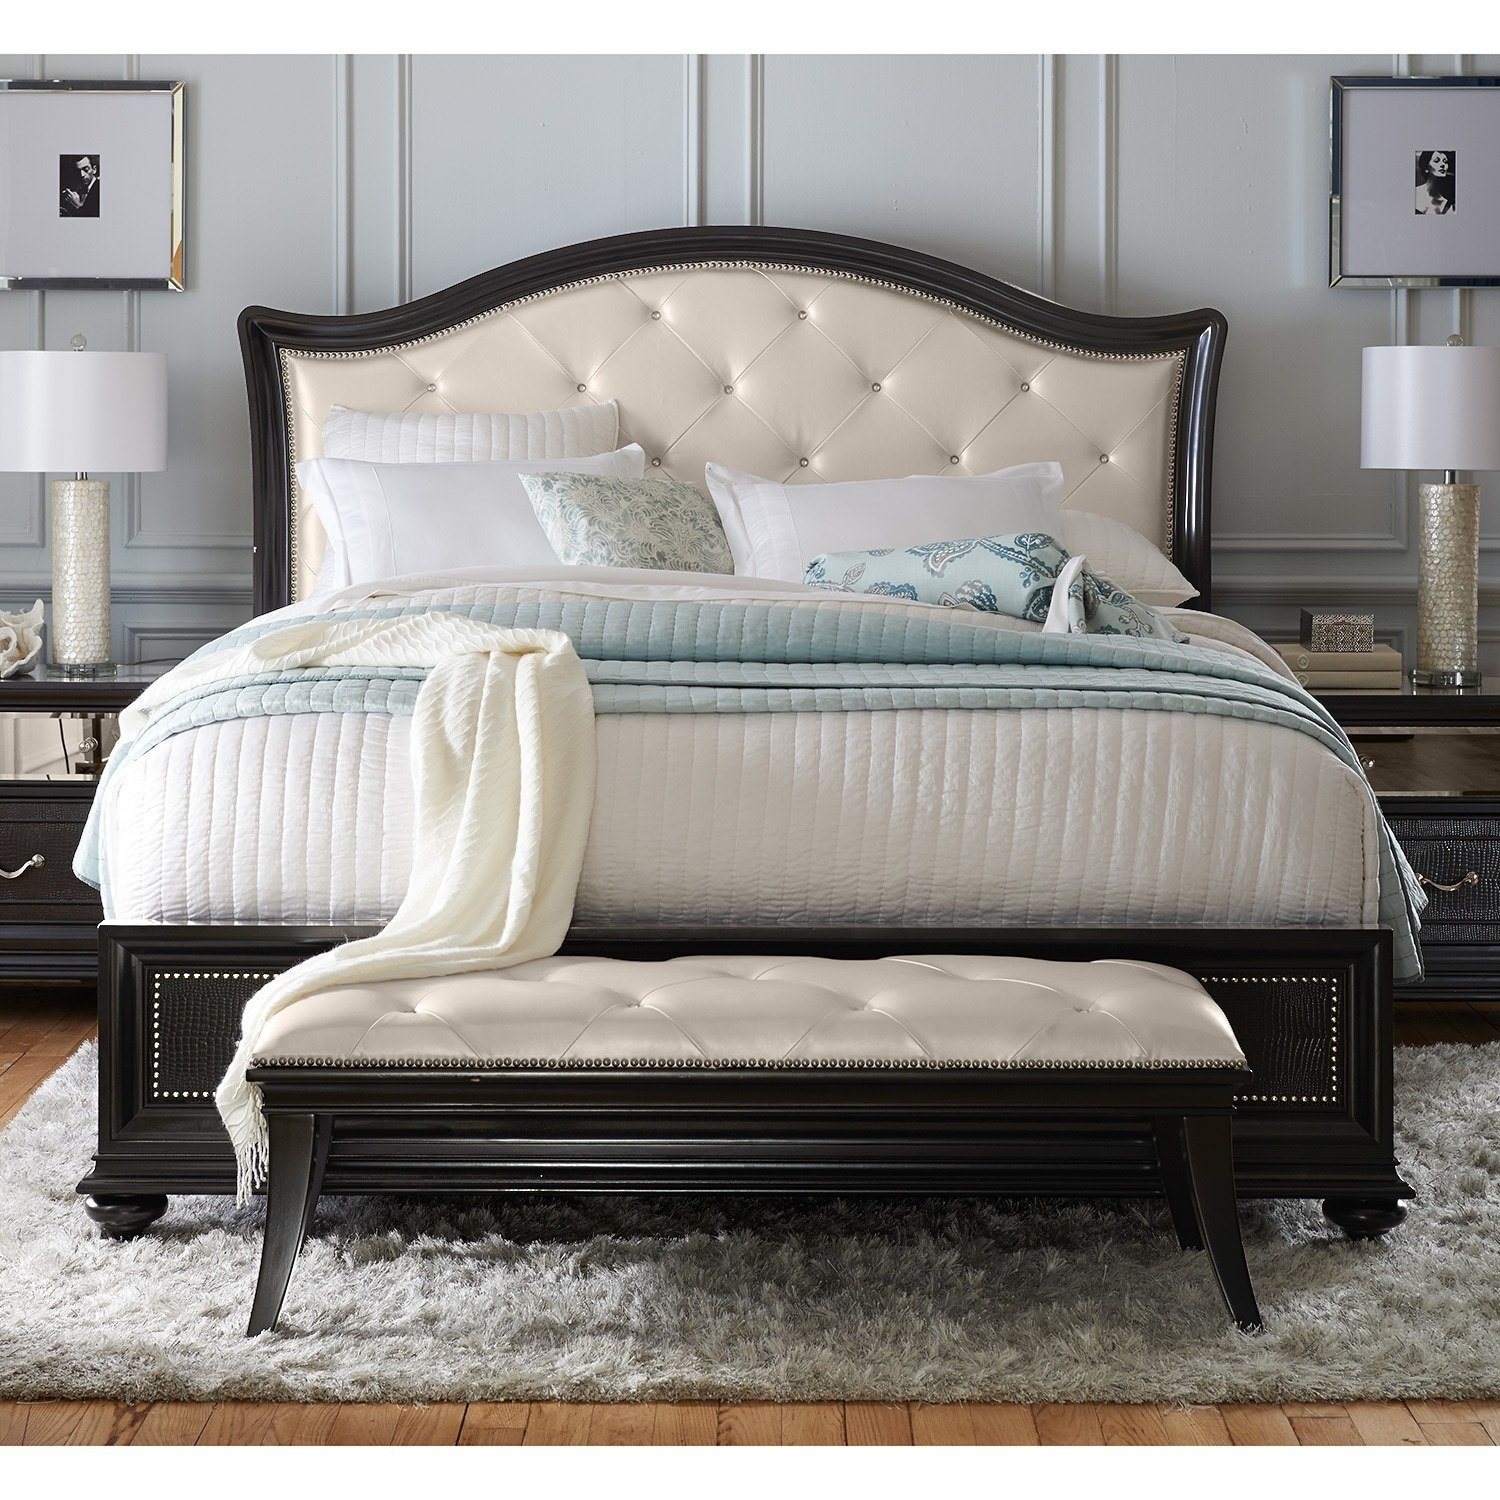 Best Marilyn Queen Bed Ebony American Signature Furniture With Pictures